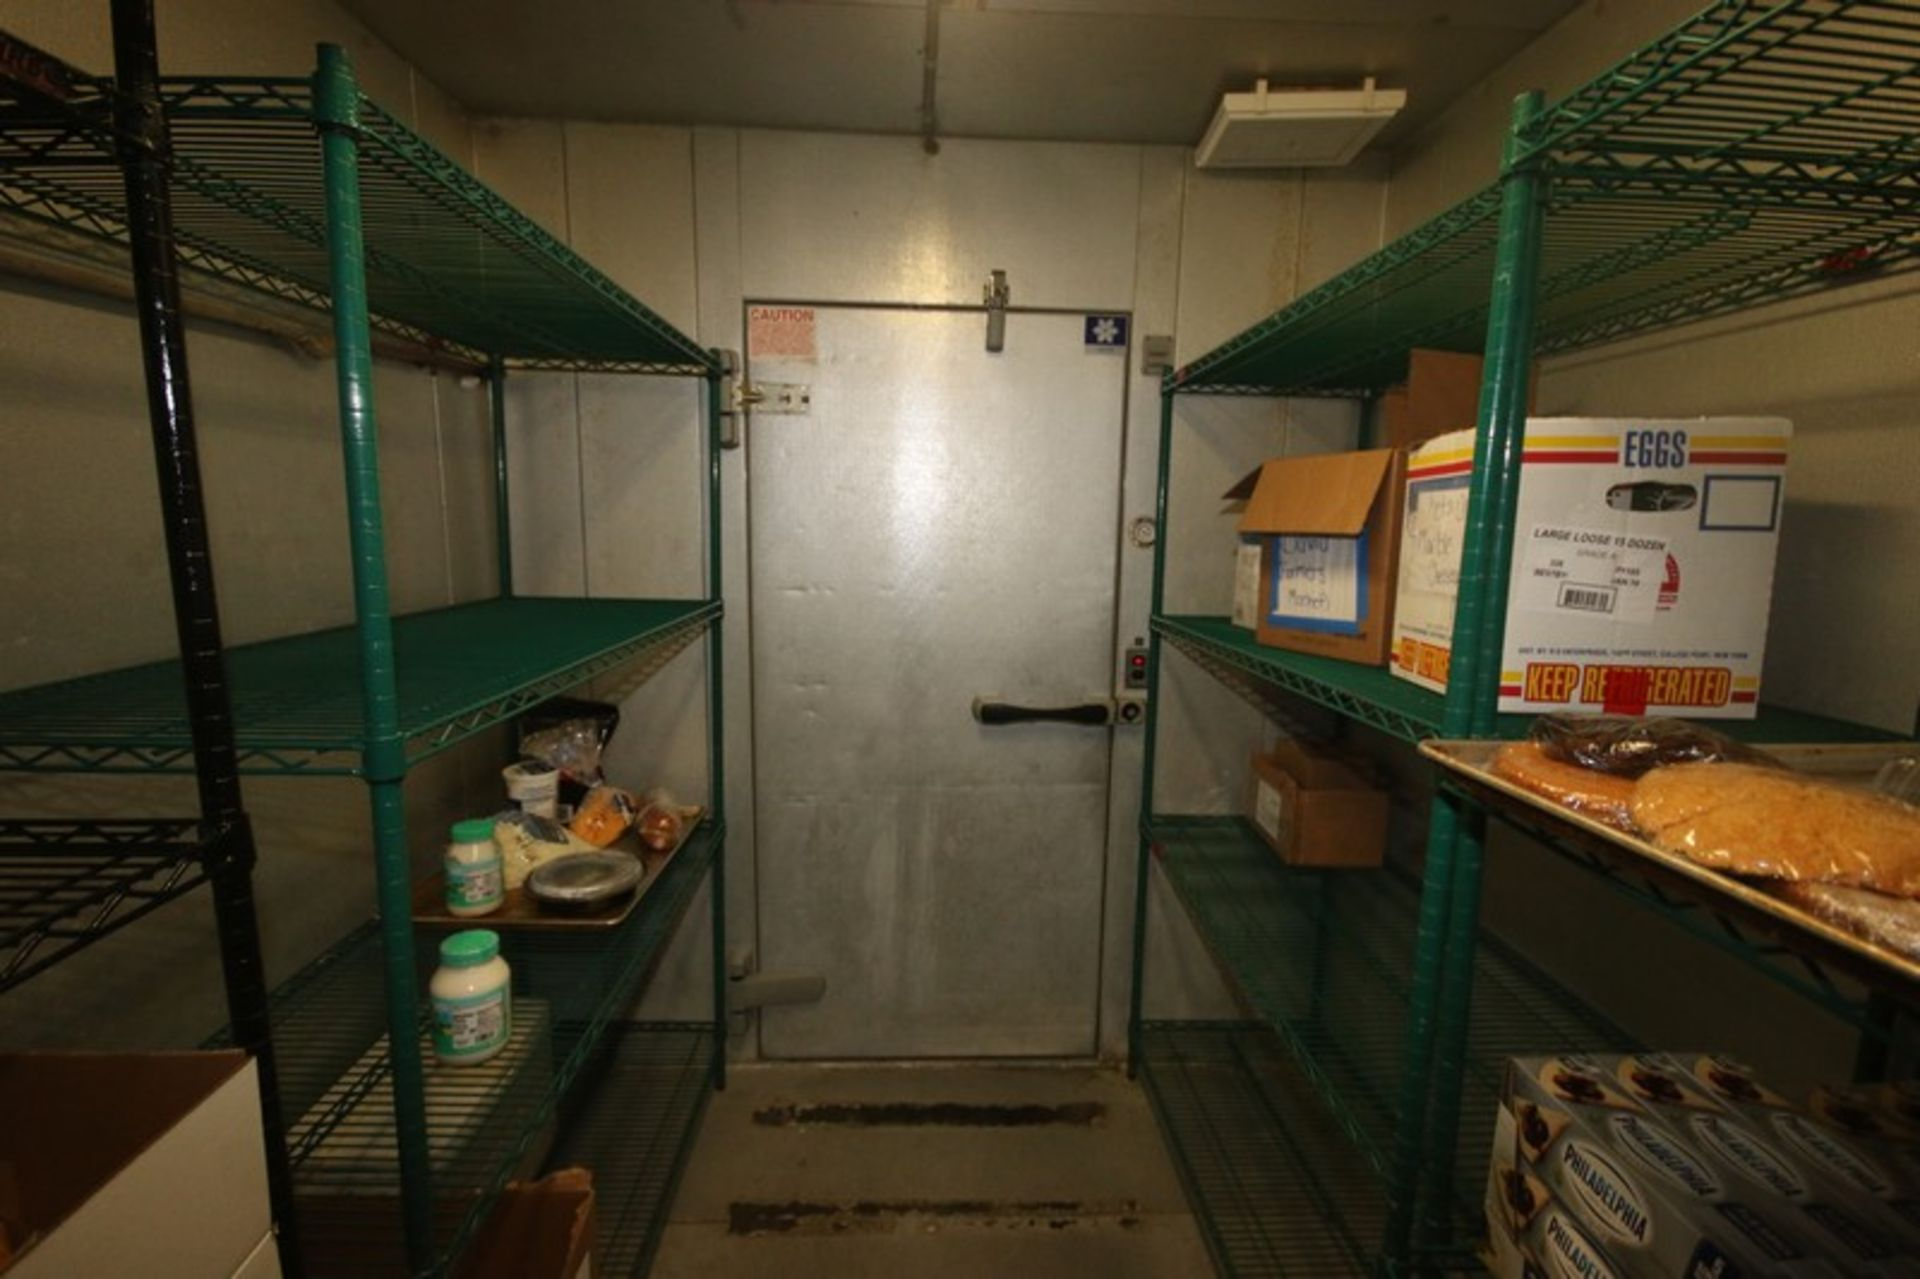 Harford Dual Compartment Walk-In Cooler & Freezer, S/N 410021576 & 410021576, Compartment Sizes: - Image 9 of 18